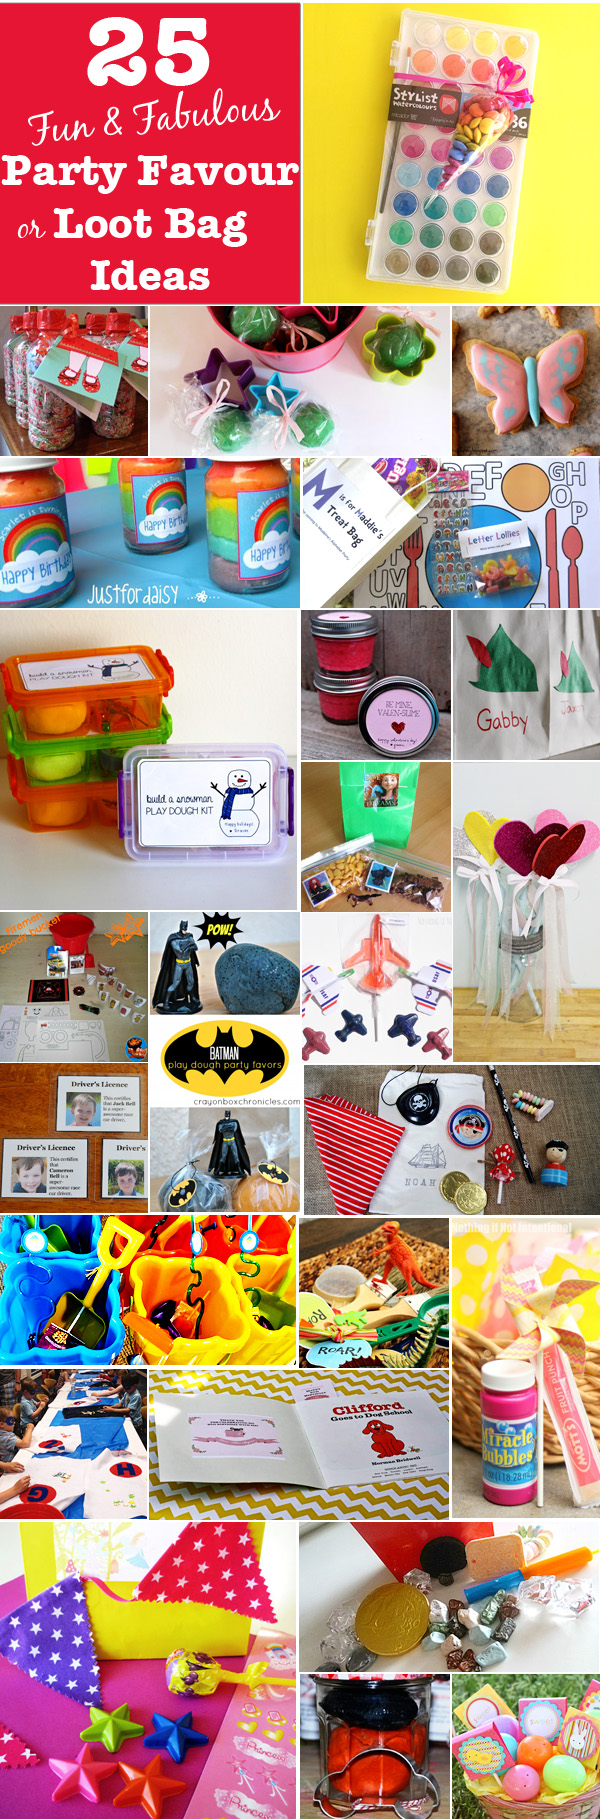 25 Loot Bag Or Party Favour Ideas For Kids Parties